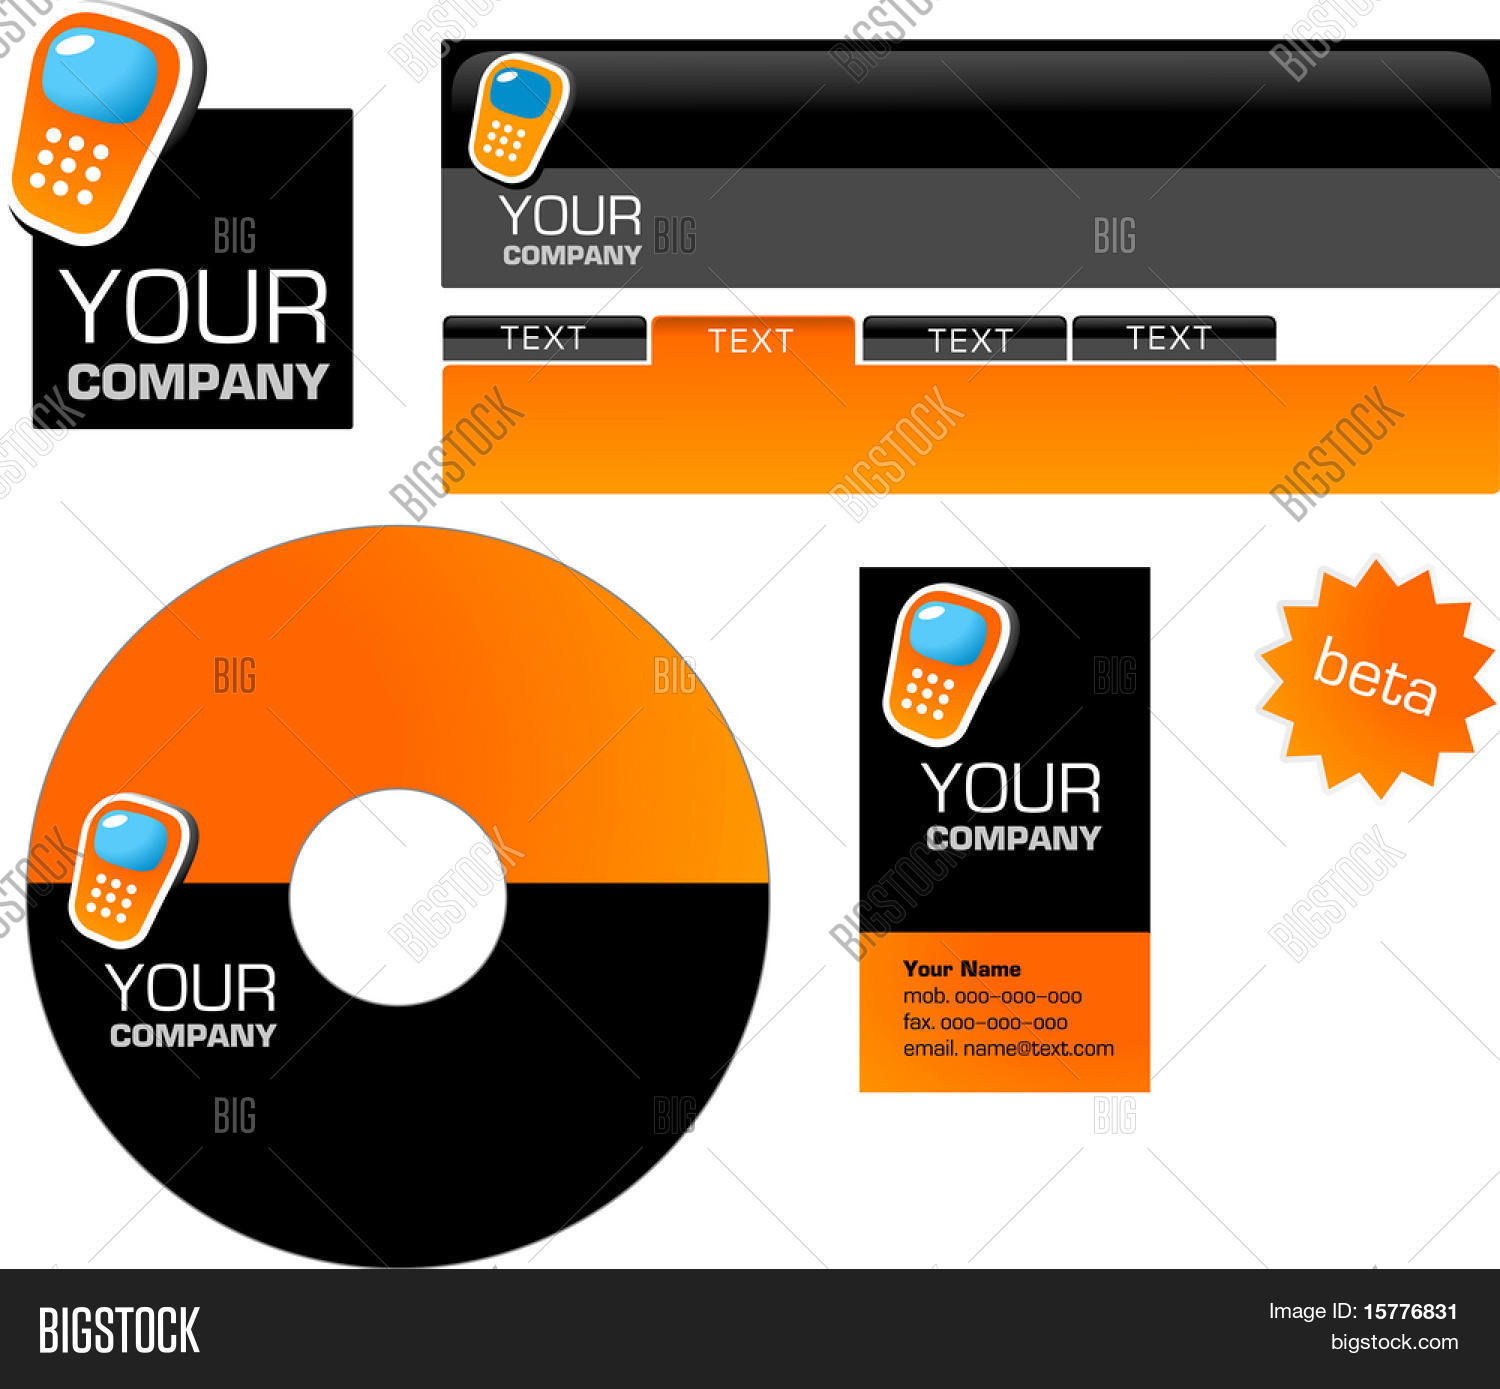 Template design logo vector photo free trial bigstock template design of logo letterhead banner header disk and business card spiritdancerdesigns Image collections